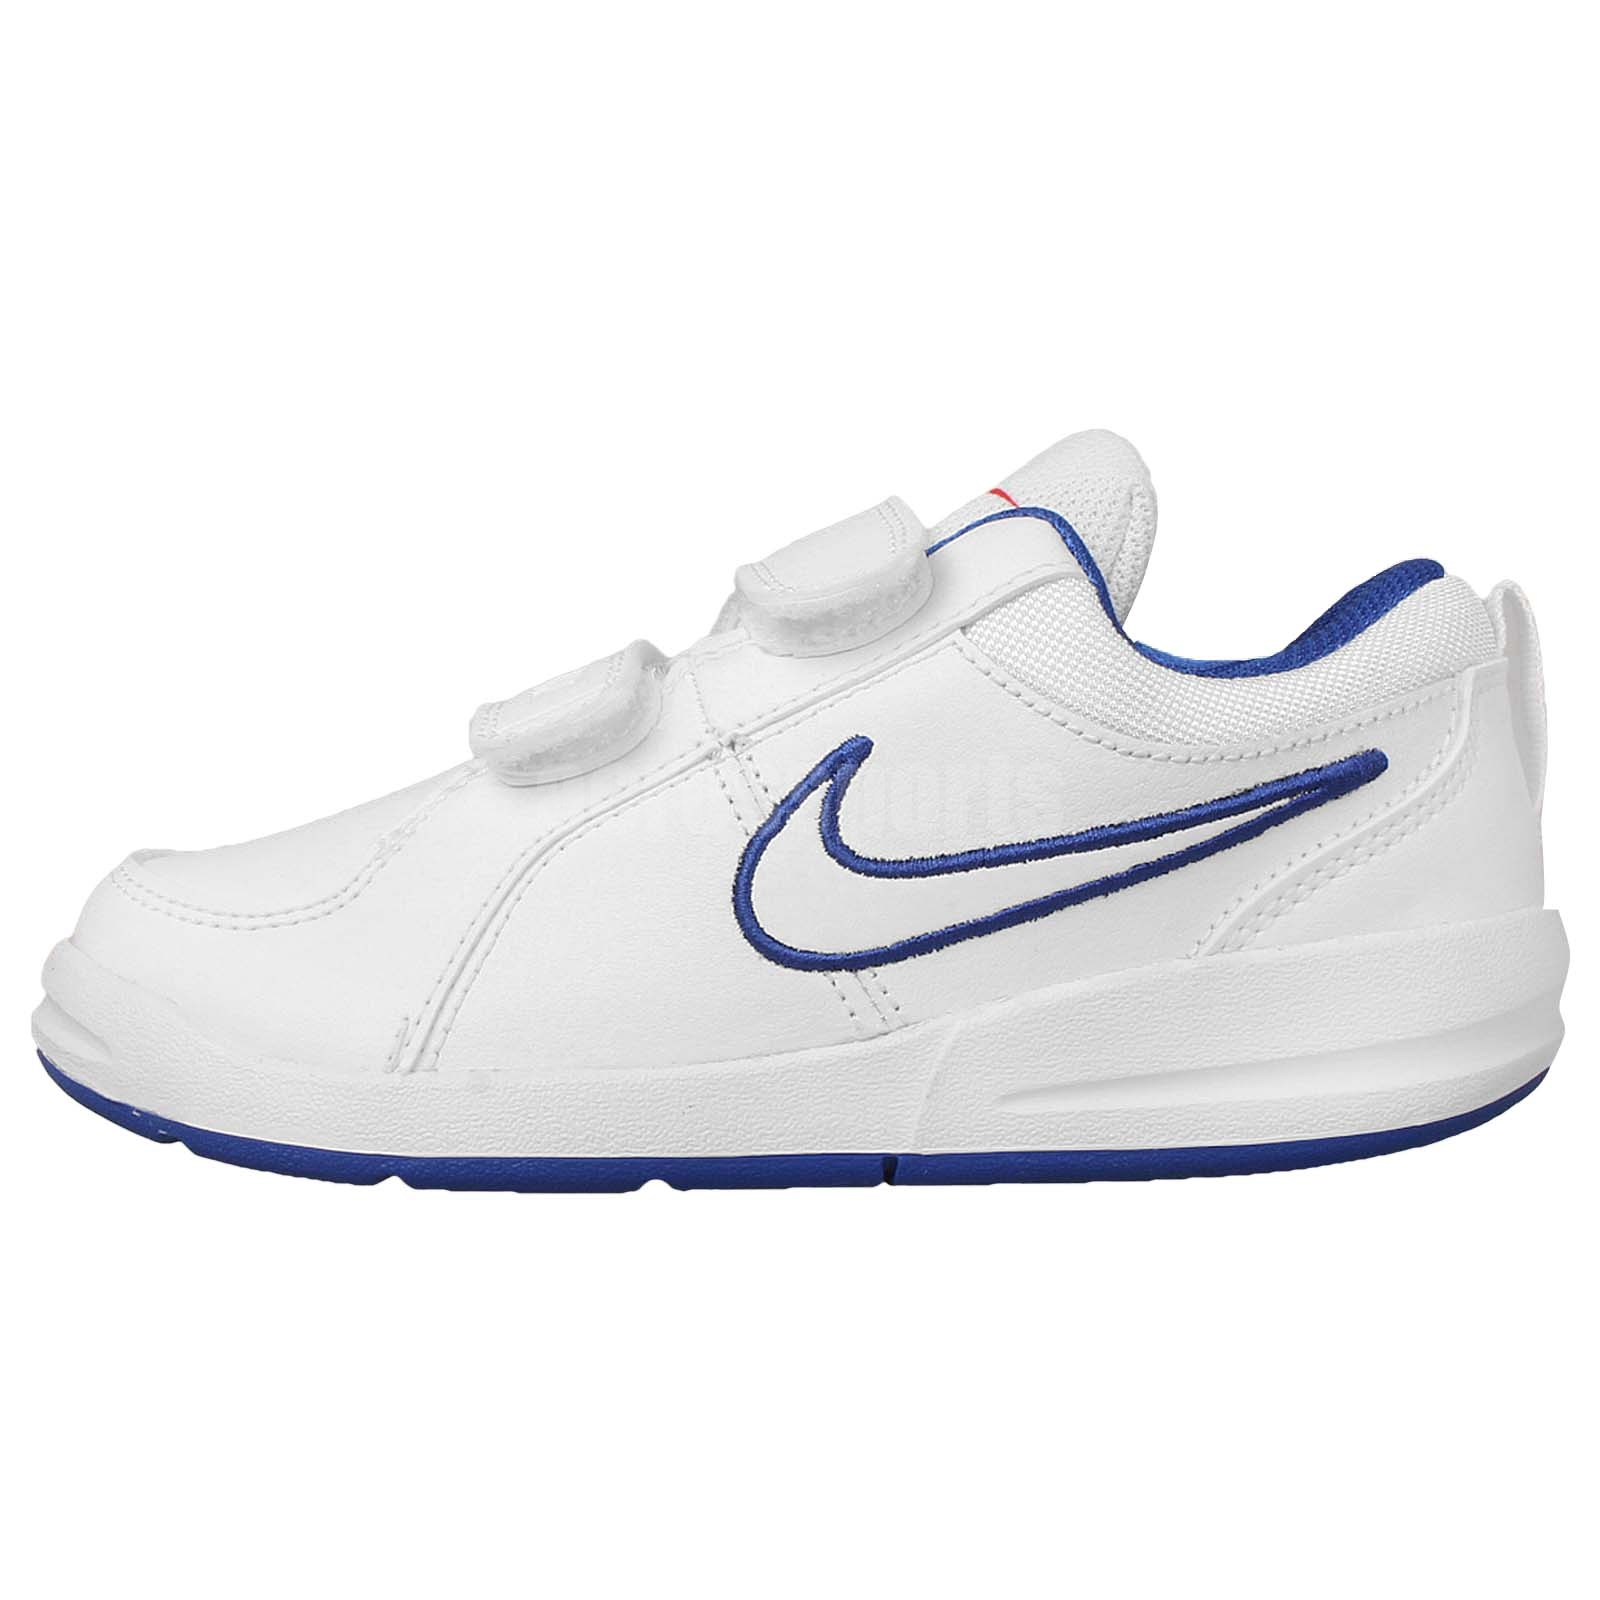 Nike Preschool Velcro Shoes